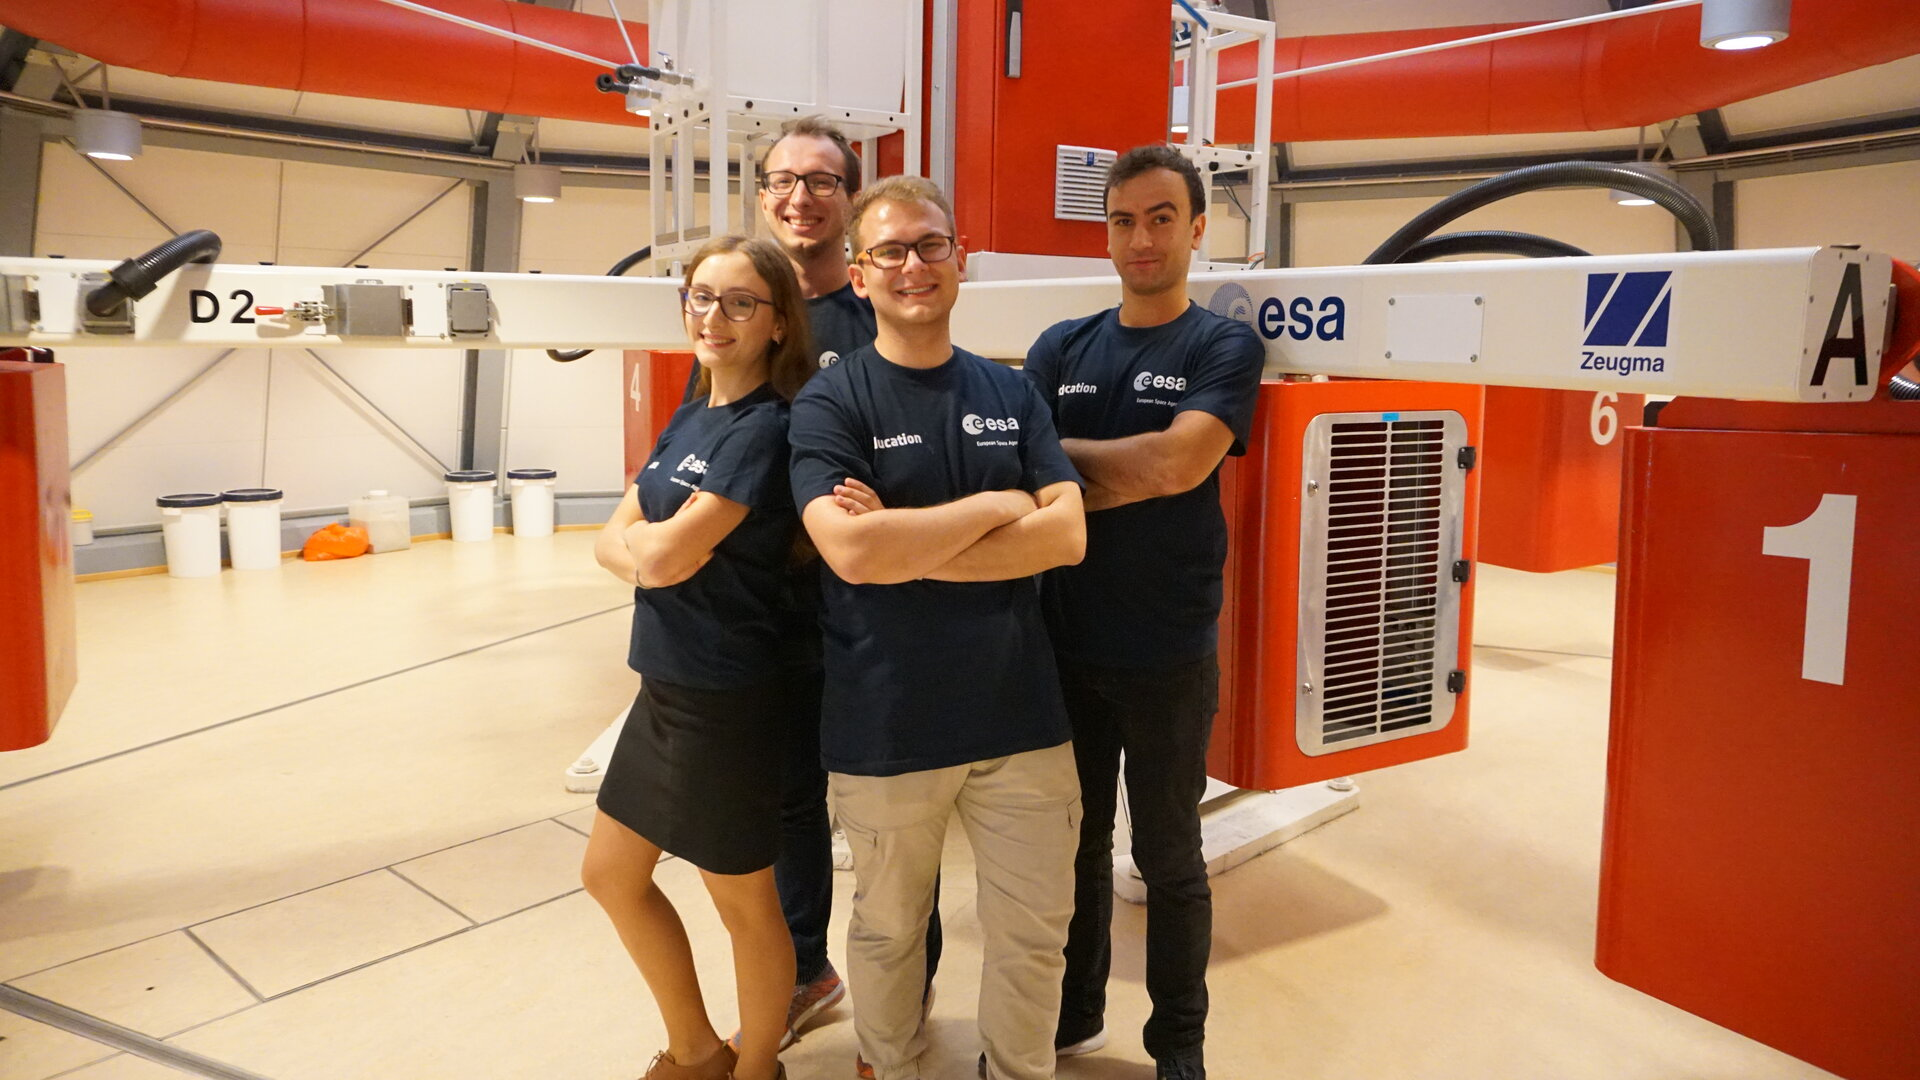 The complete HyperCells team with the Large Diameter Centrifuge